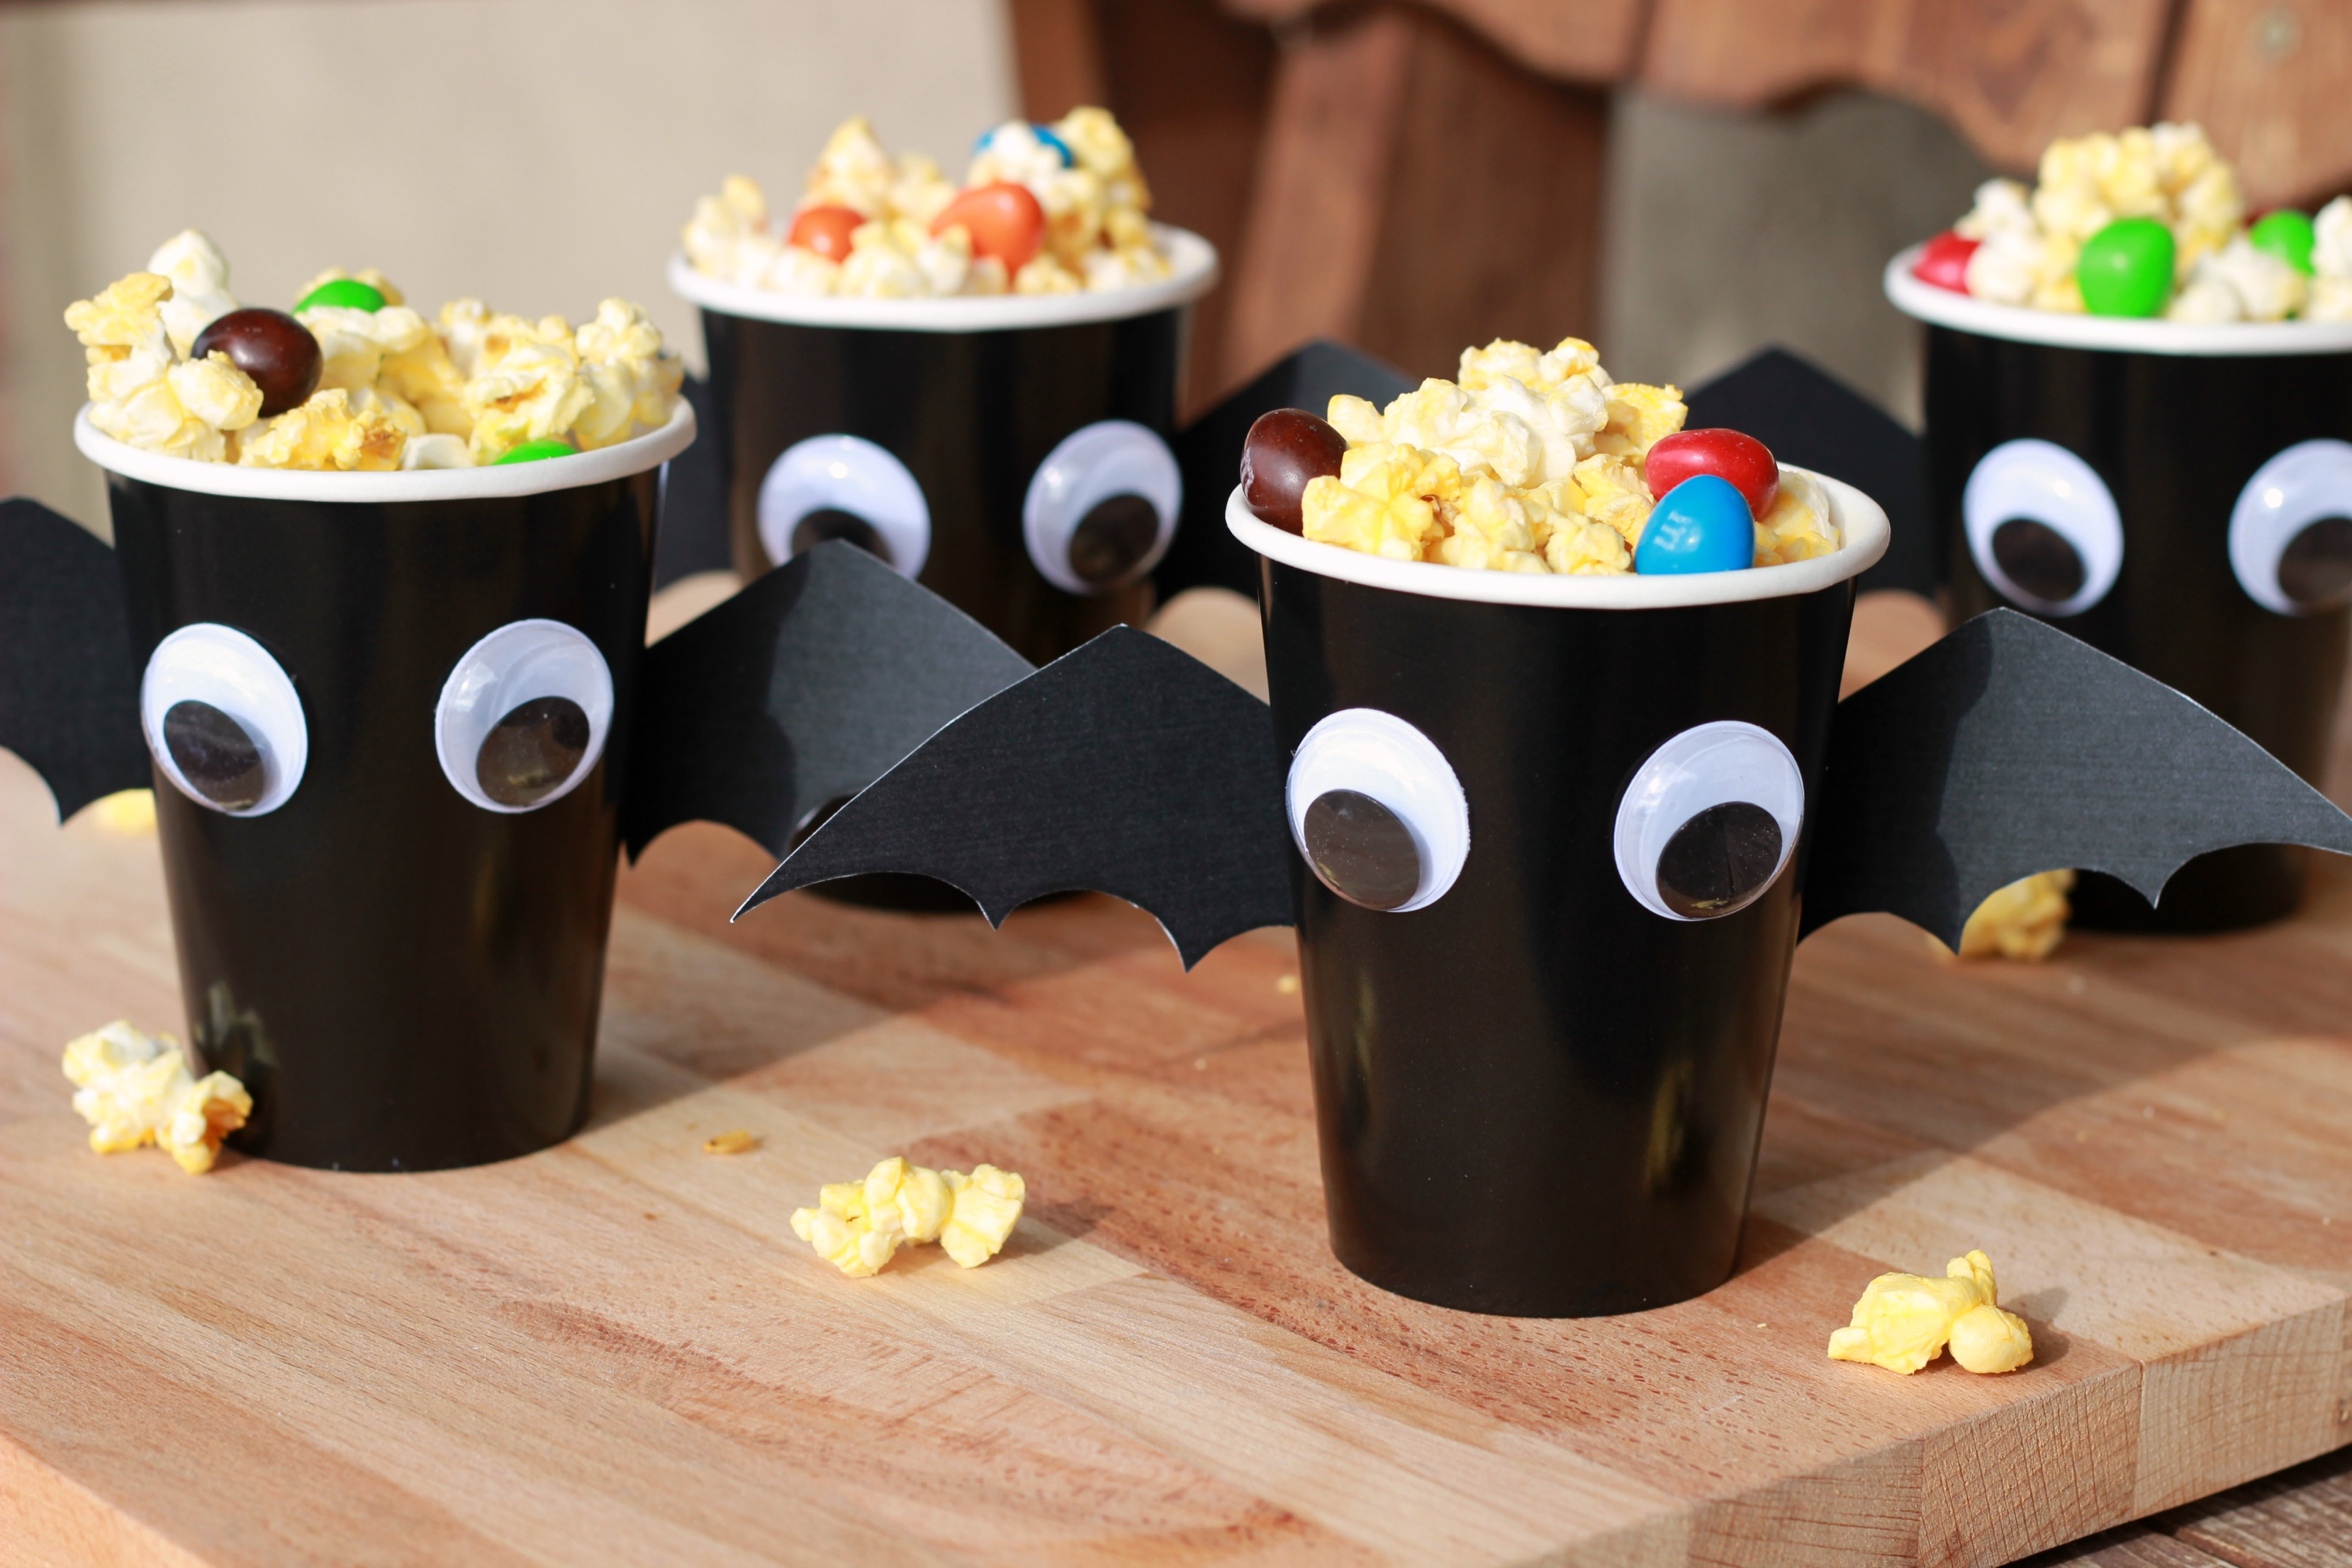 bat cups.ggnoads